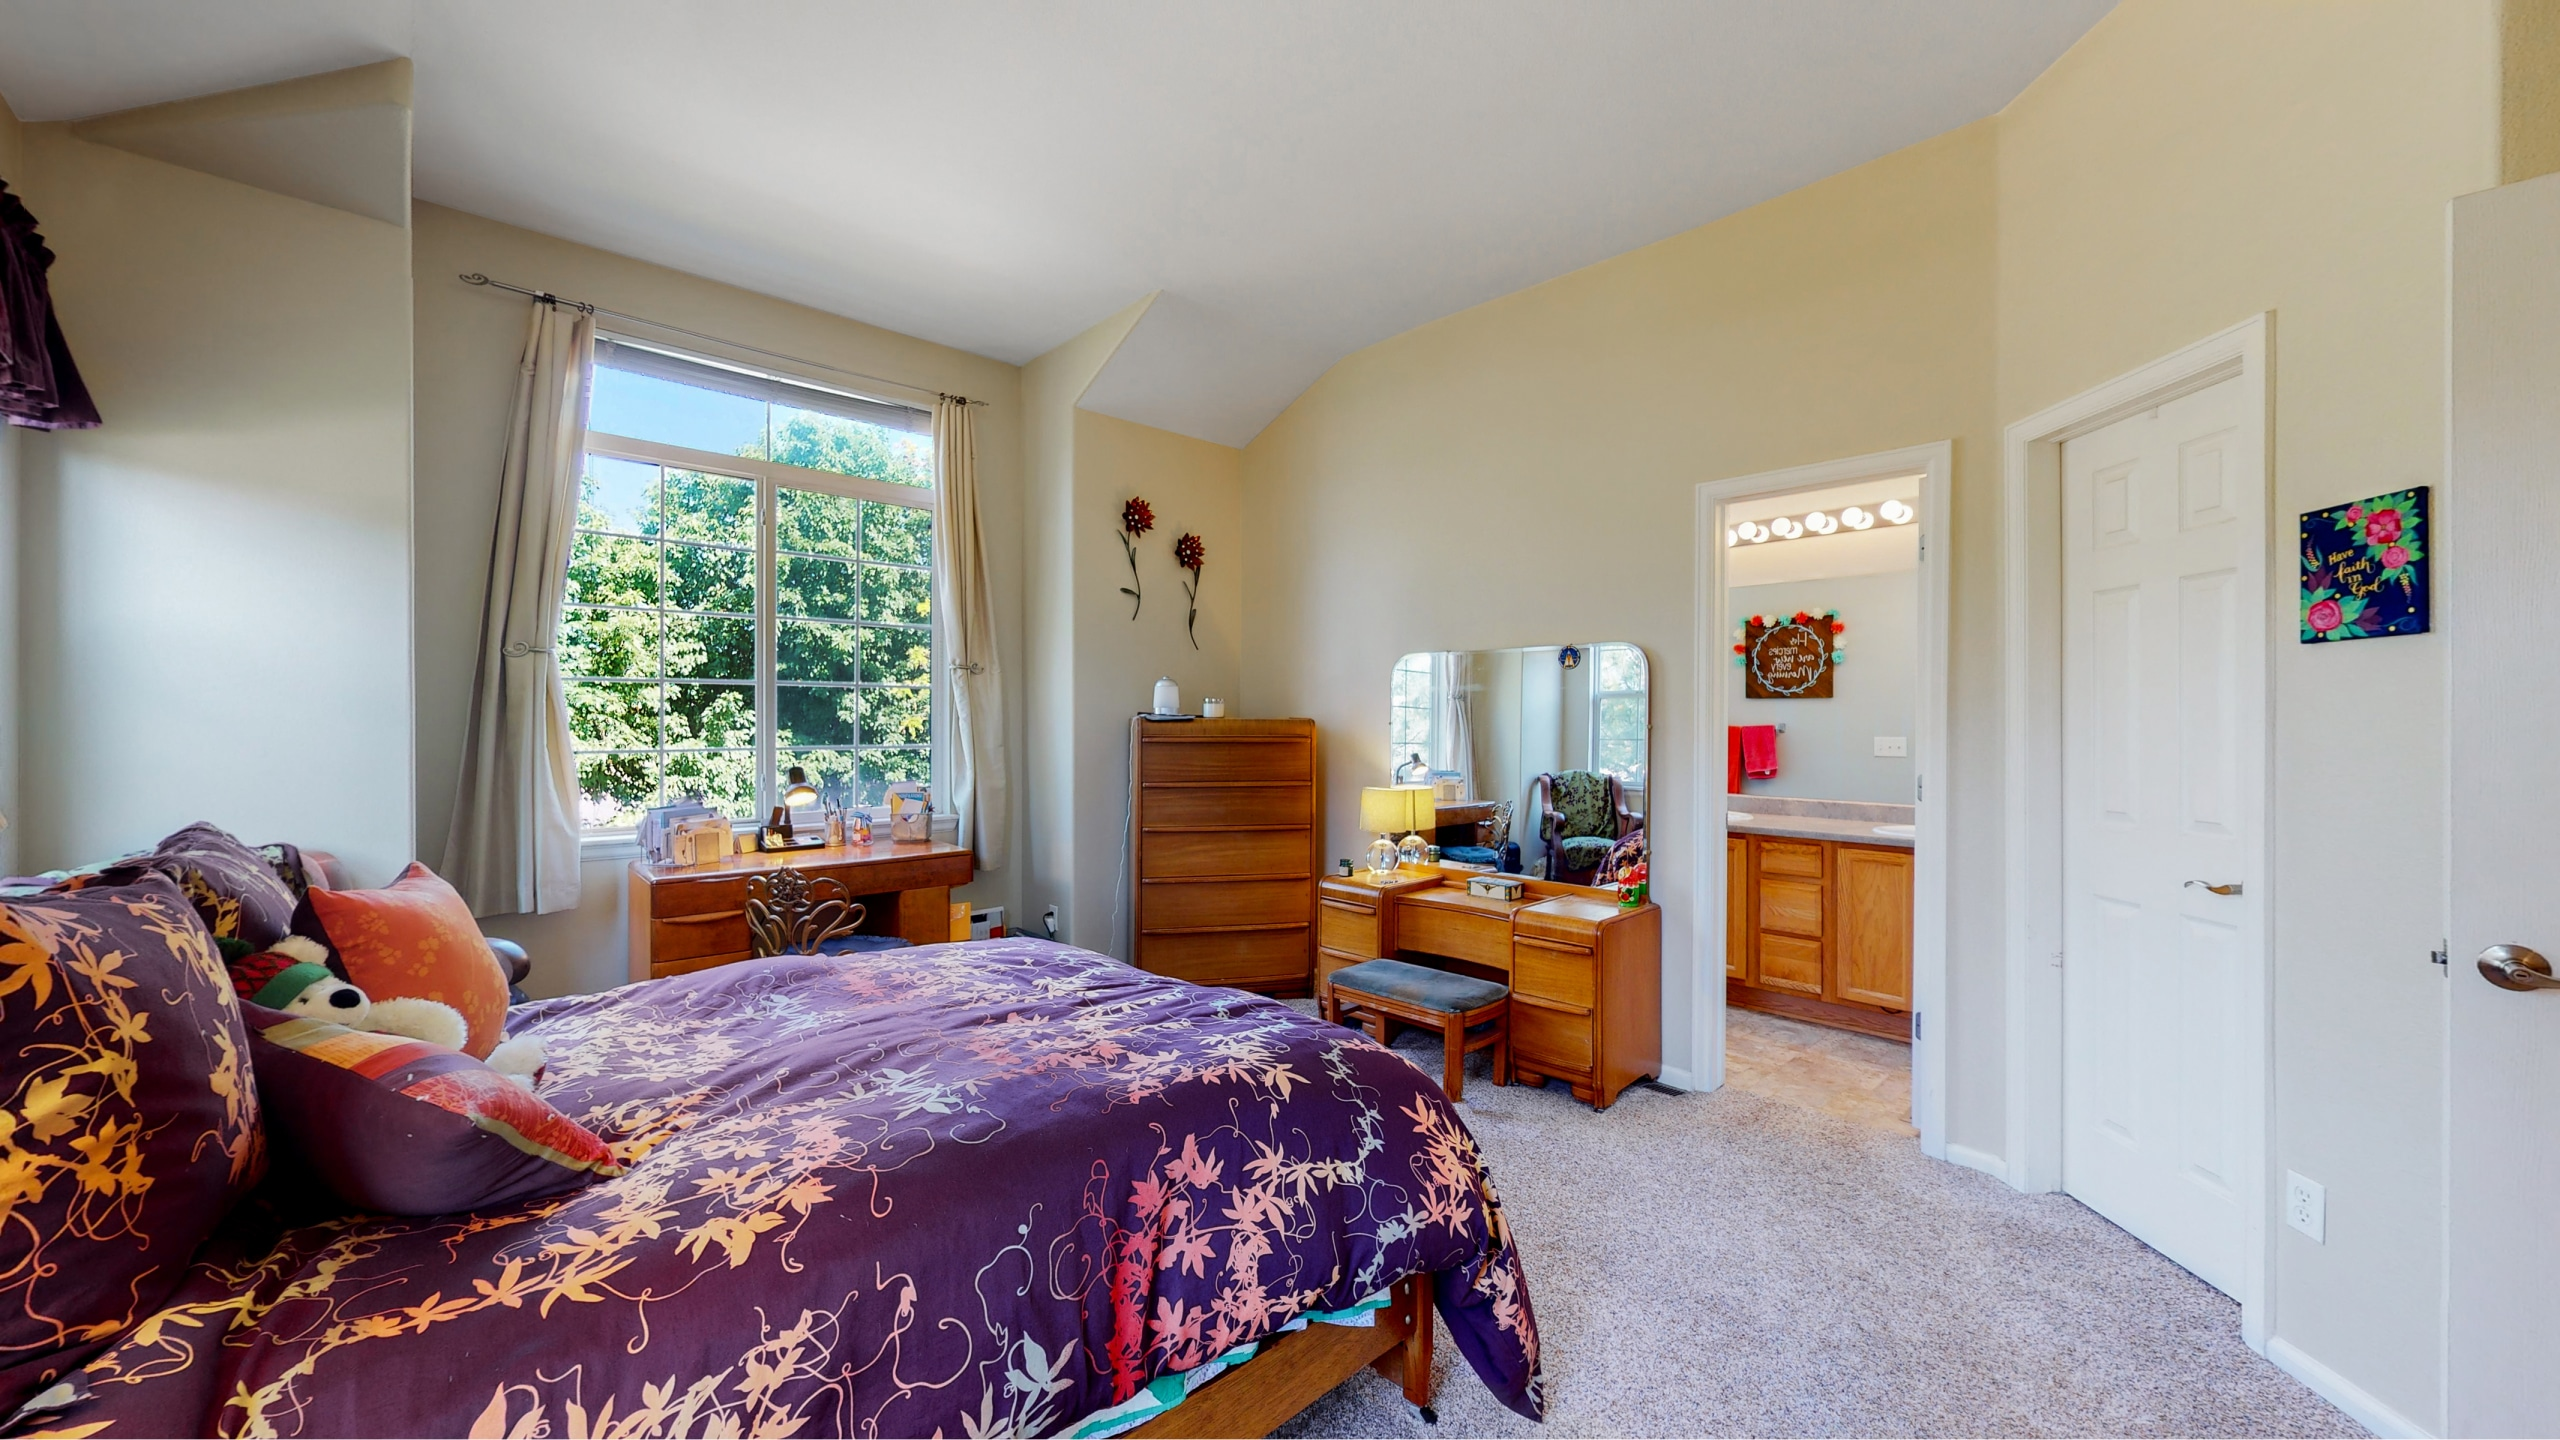 Master Bedroom With Large Windows and Private Bath Walk-in Closet